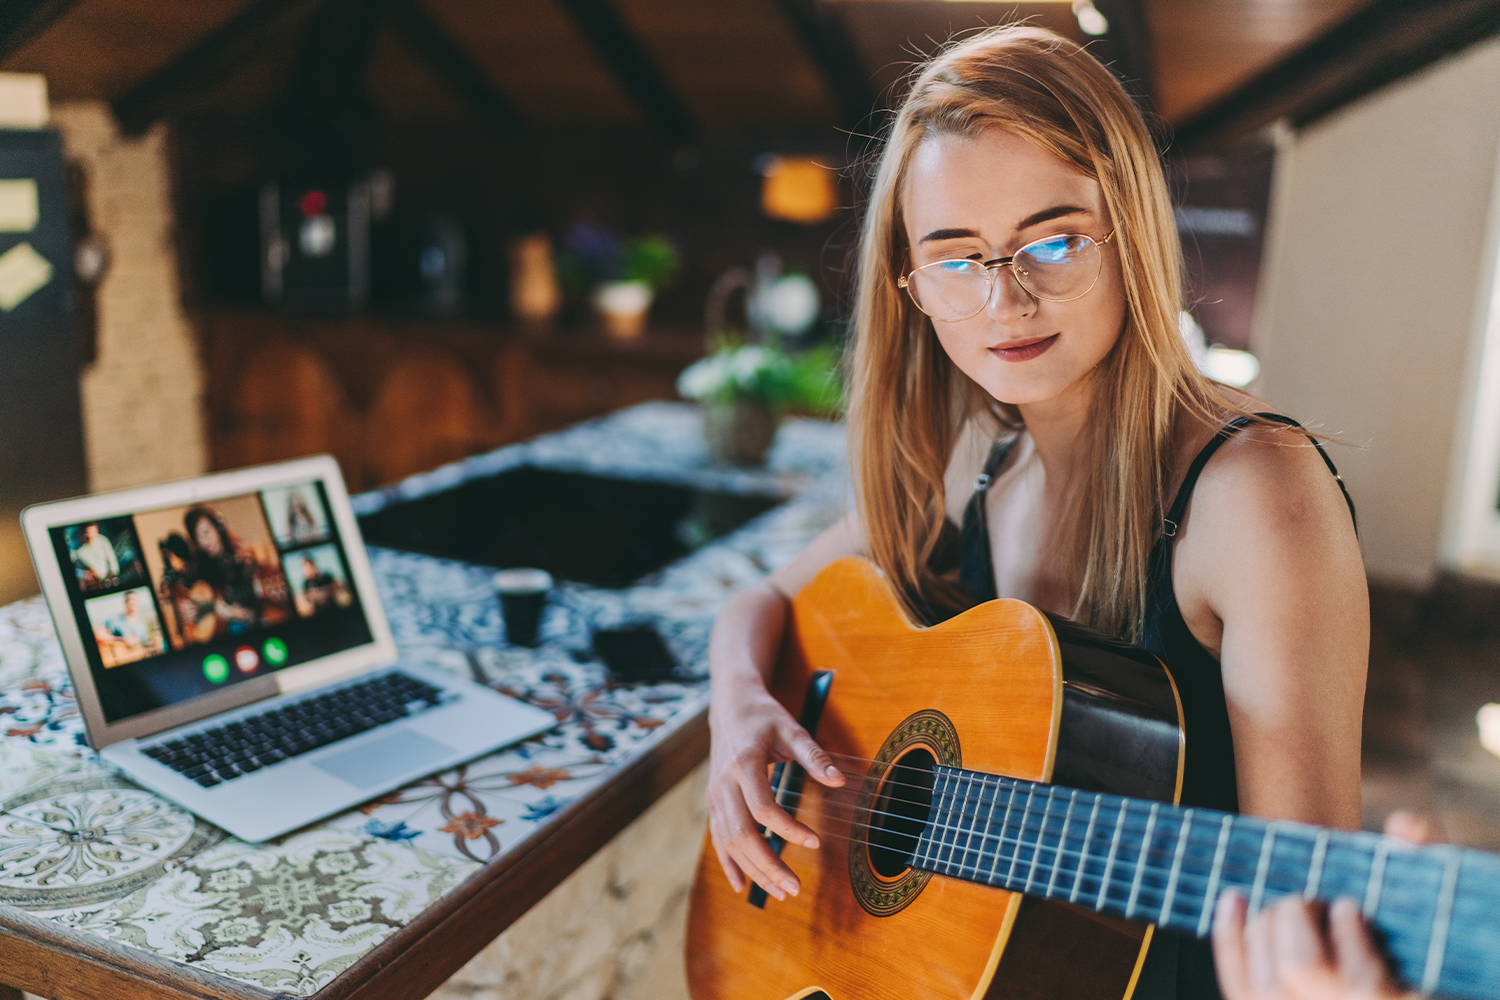 5 Benefits Of Online Groups For Music Industry Professionals